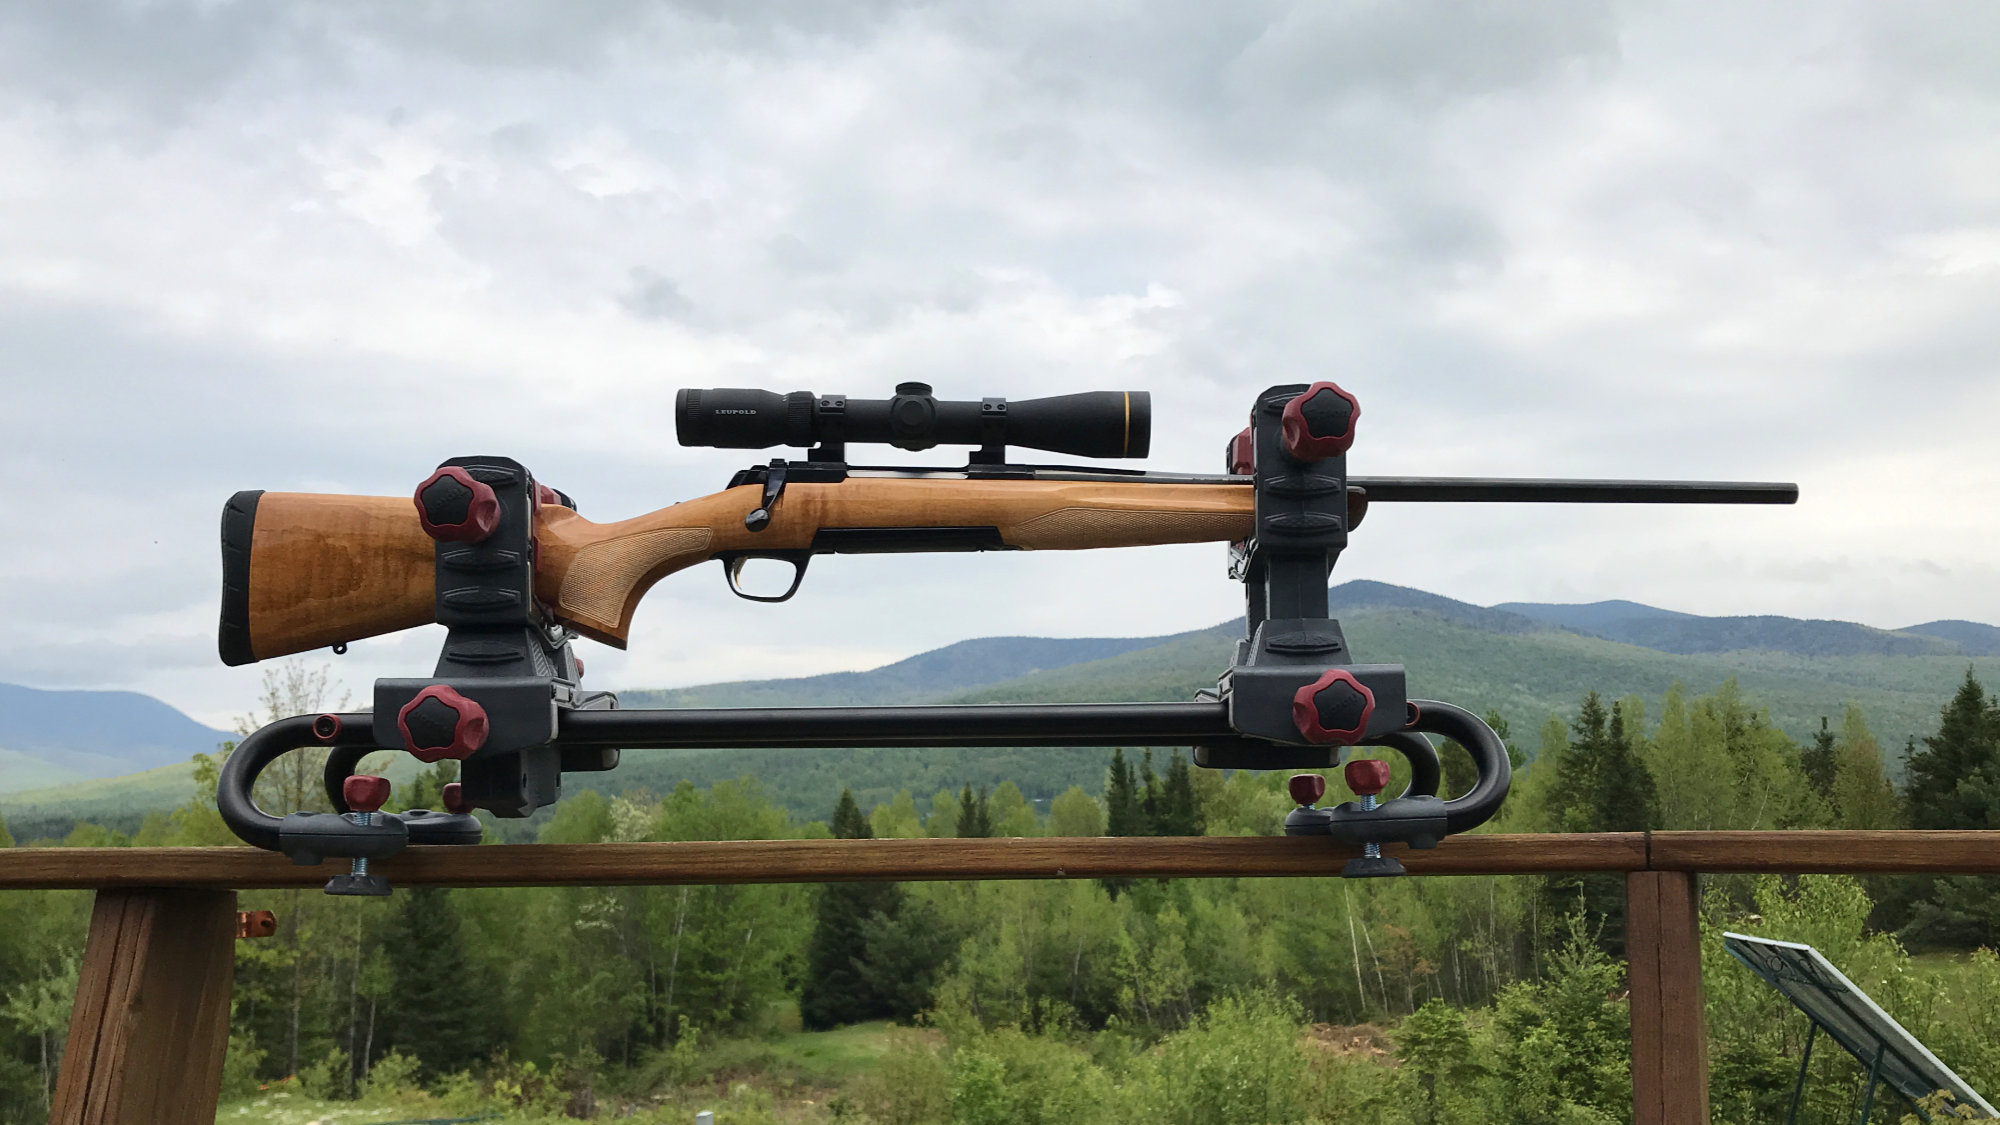 Limited Edition Browning X-Bolt Medallion Rifle with a Maple stock